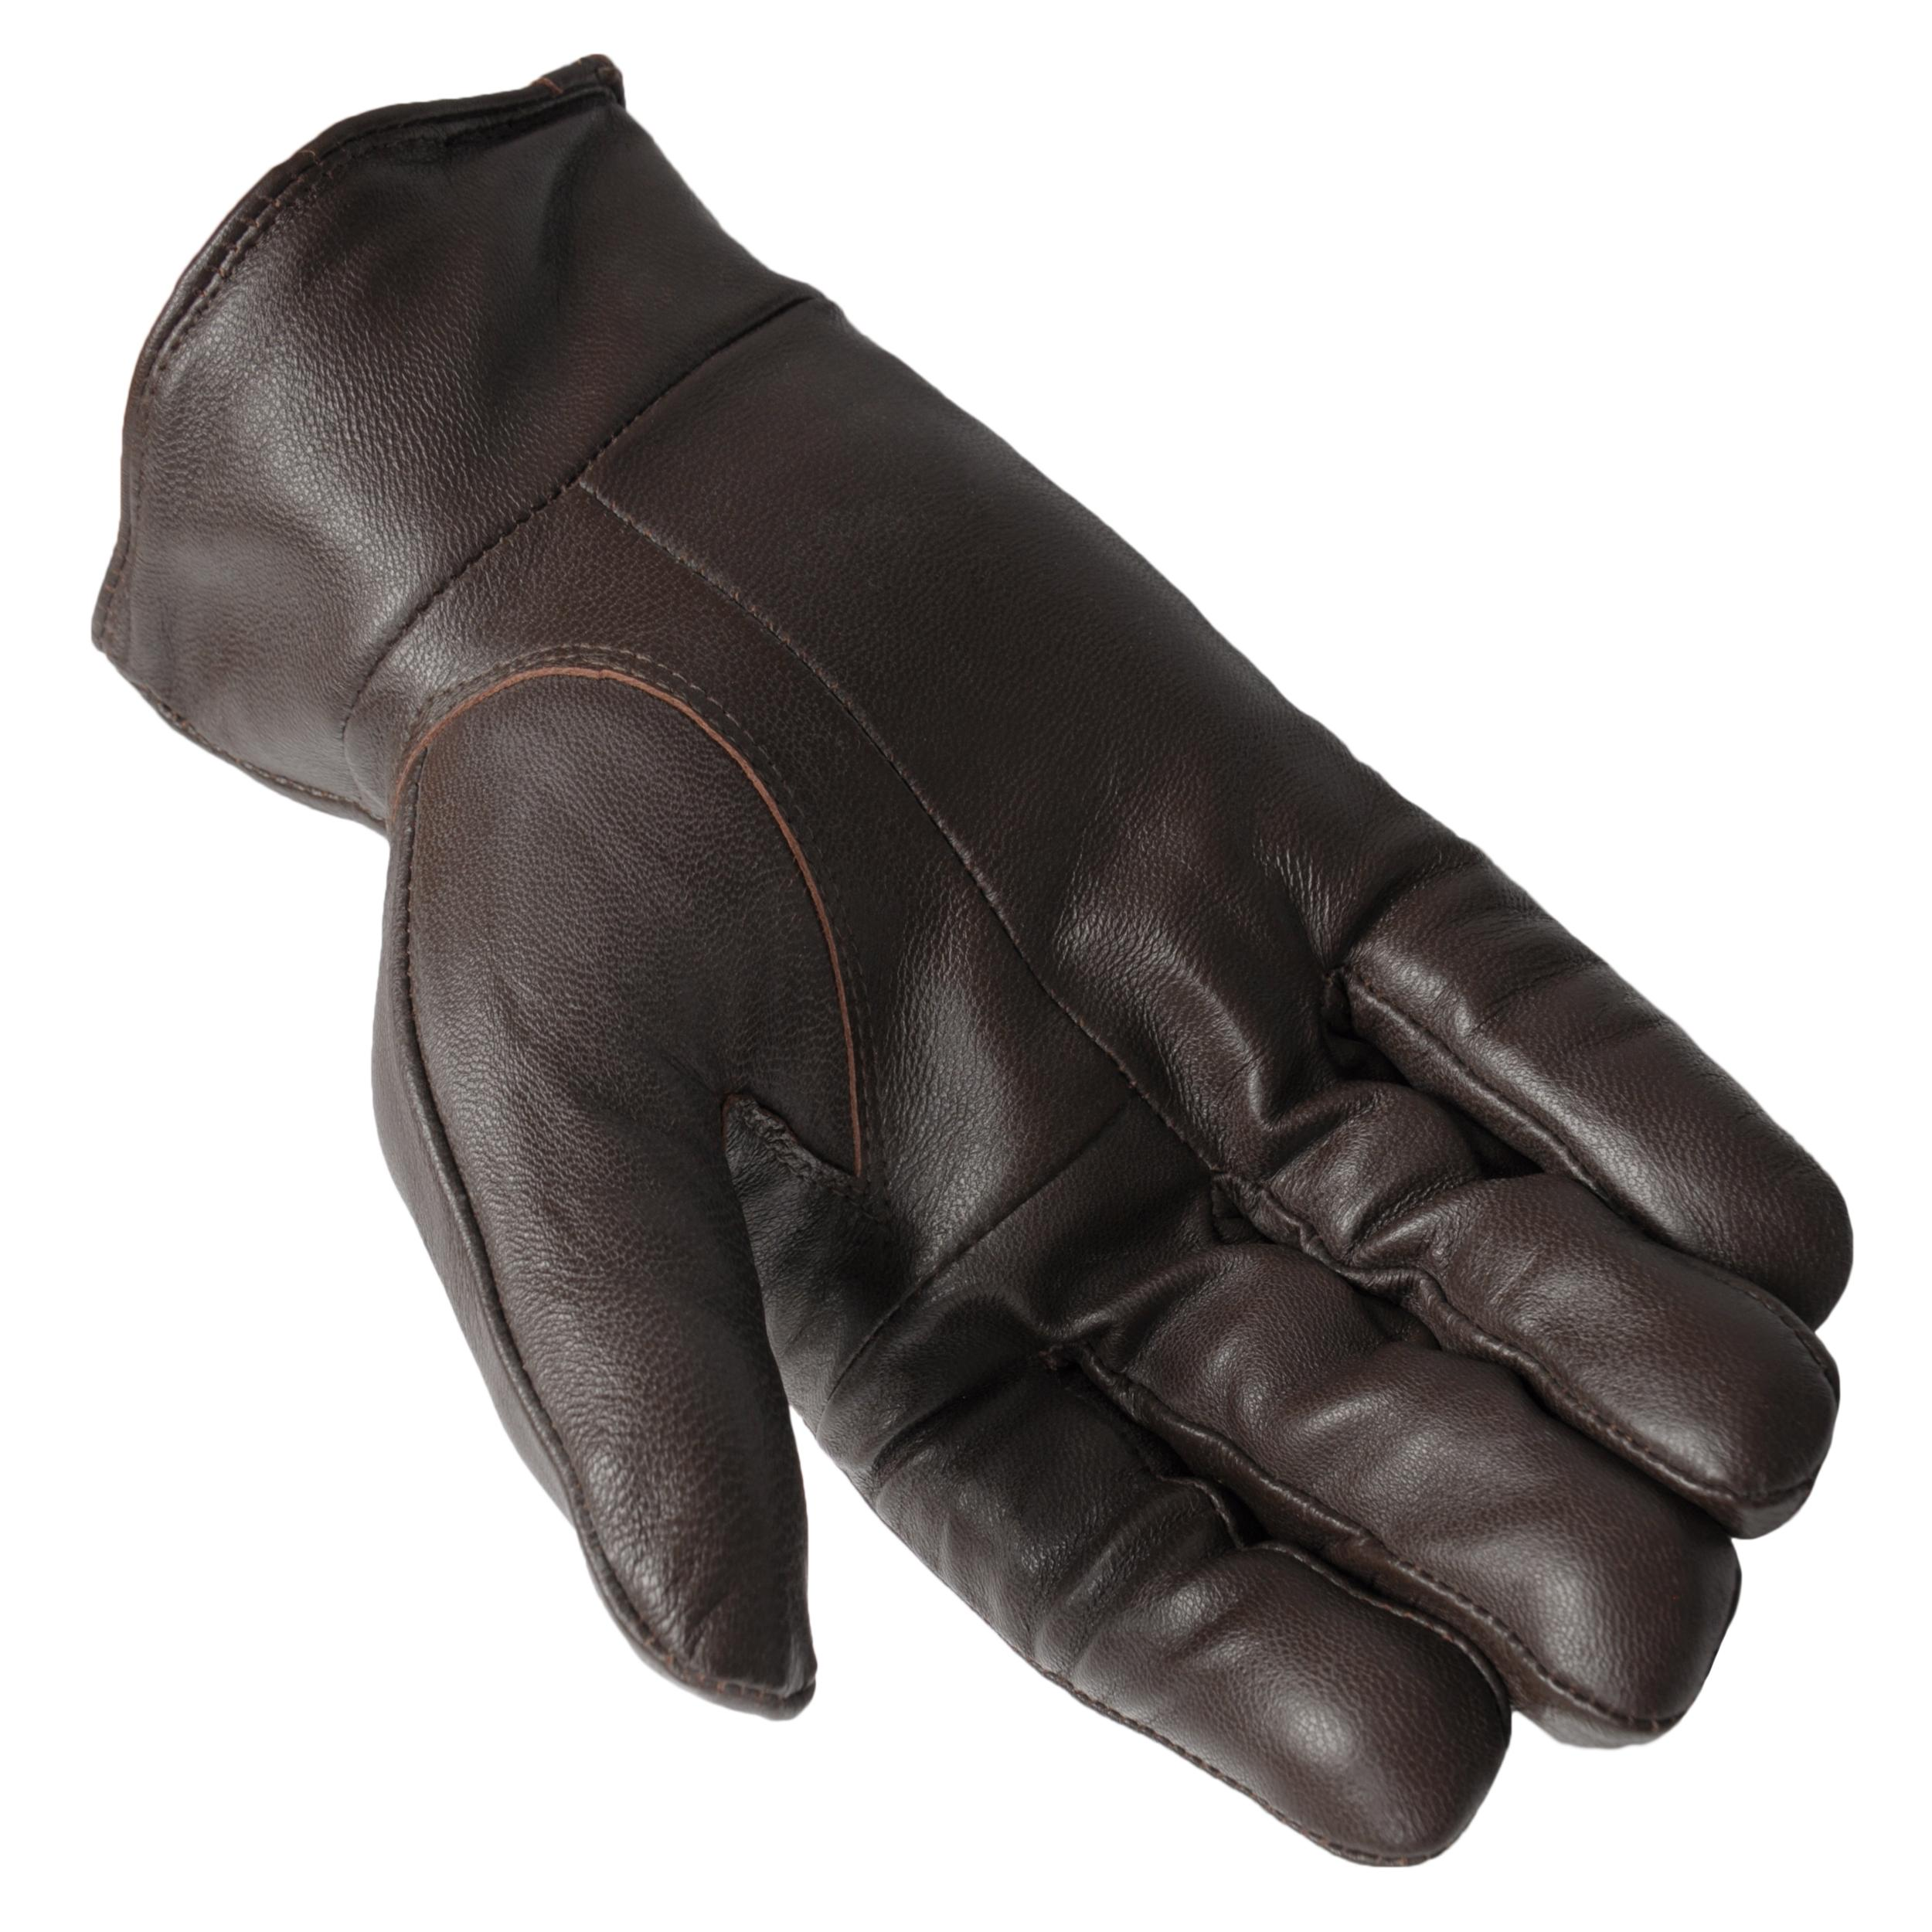 Boston Traveler Men's Genuine Leather Thinsulate Lined Gloves - Thumbnail 1